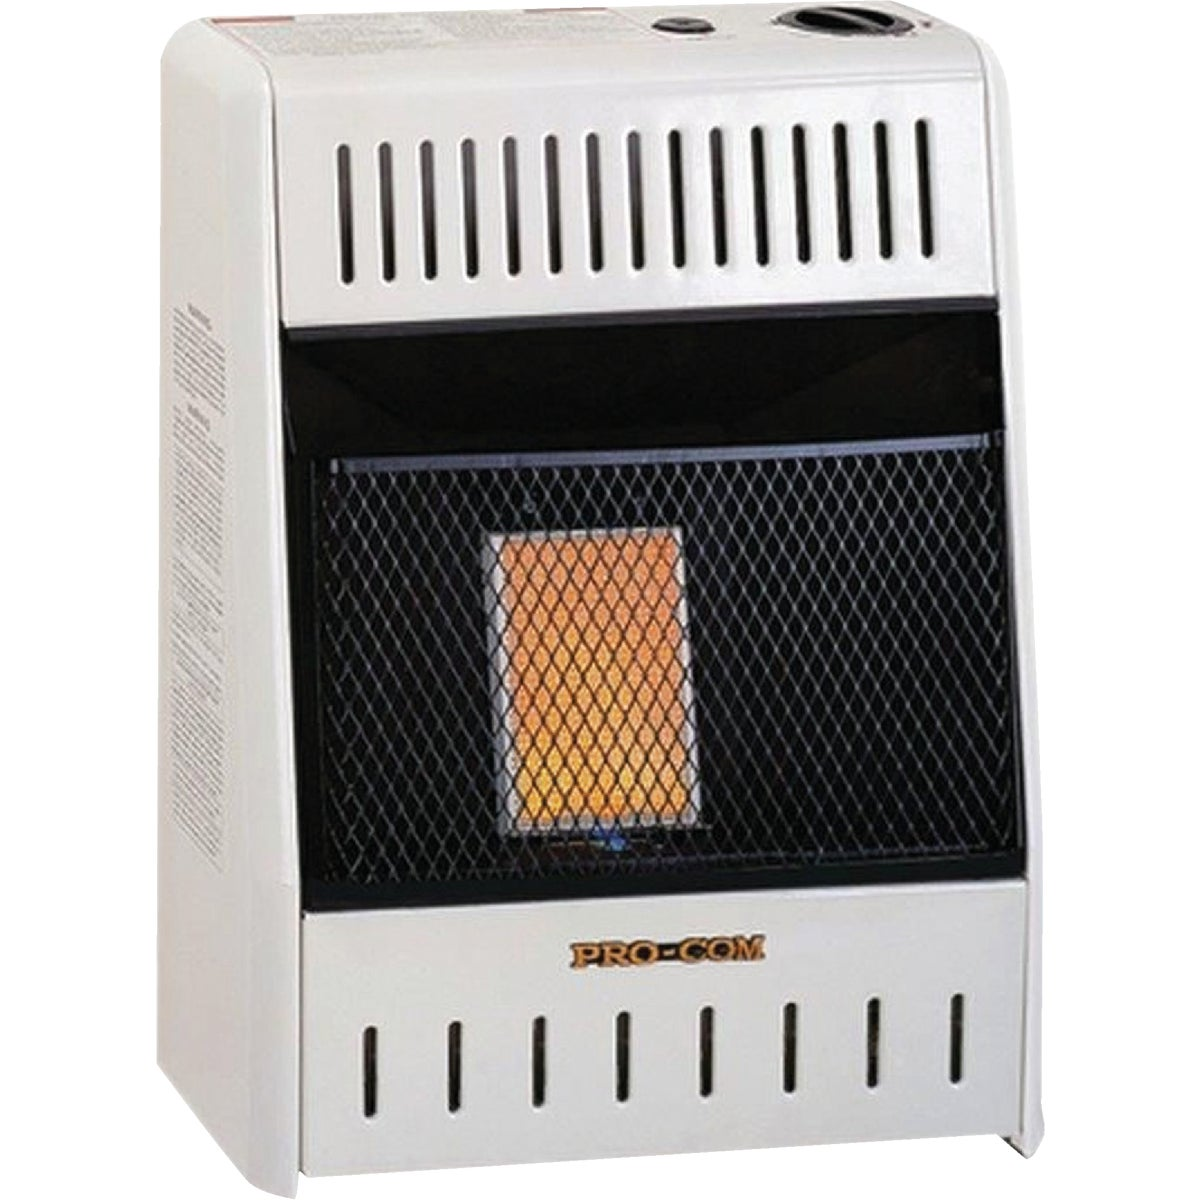 6K IR MAN LP GAS HEATER - KWP110 by World Marketing